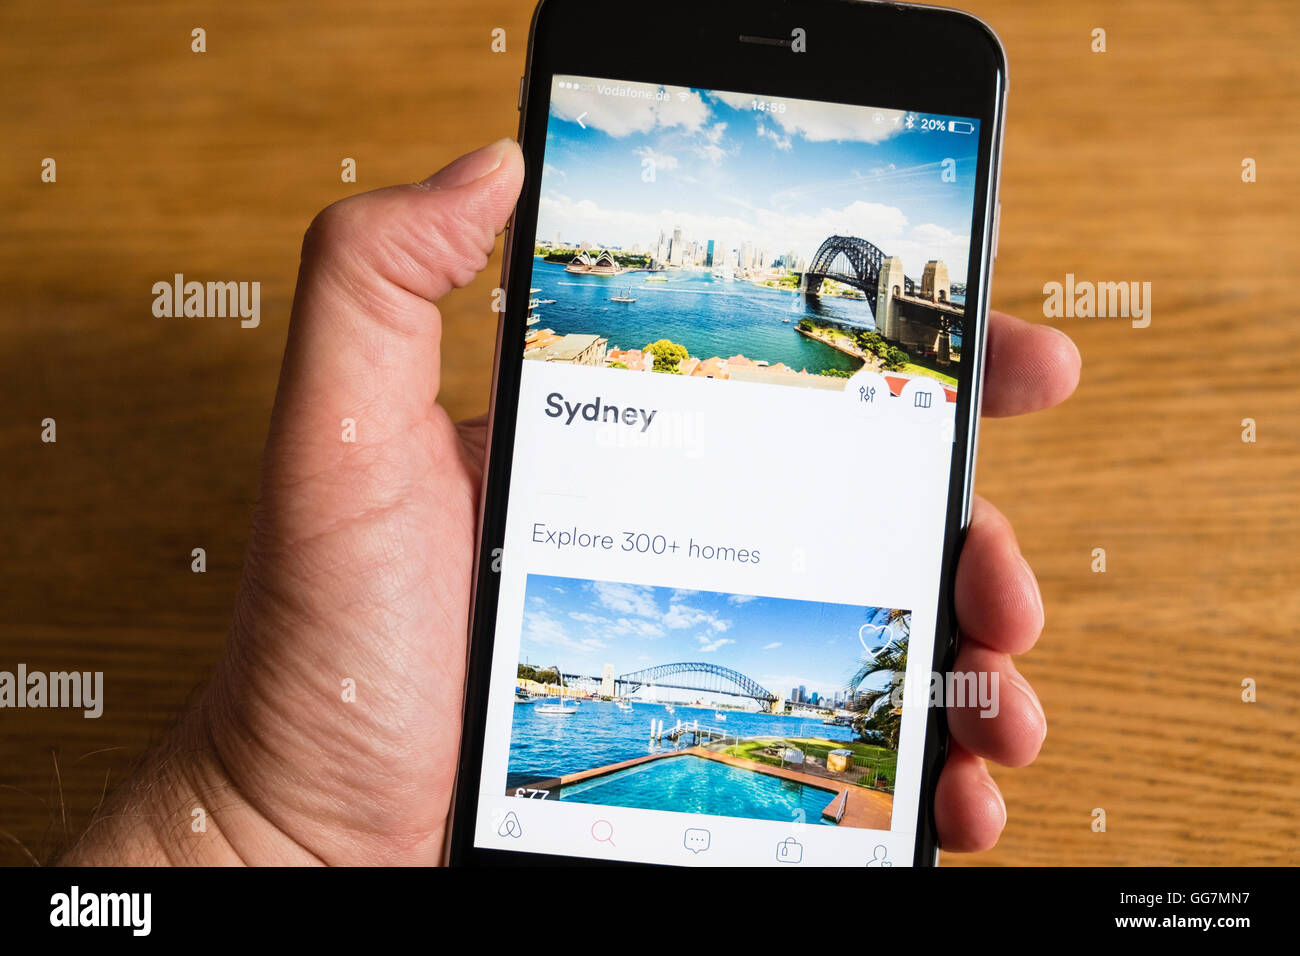 Airbnb app showing Sydney in Australia on a smart phone - Stock Image